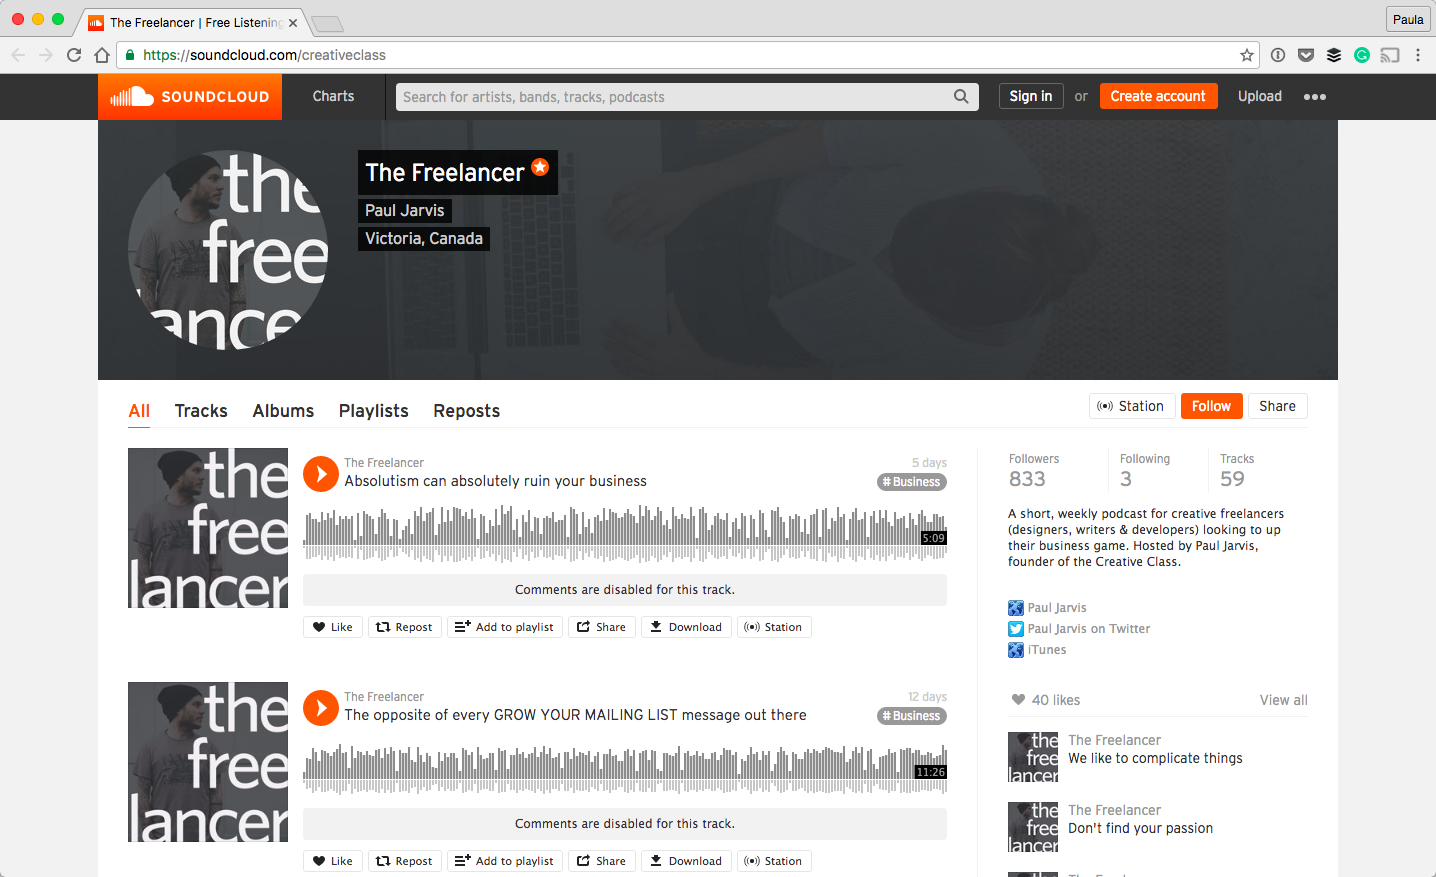 the-freelancer-free-listening-on-soundcloud-2016-10-02-02-47-20